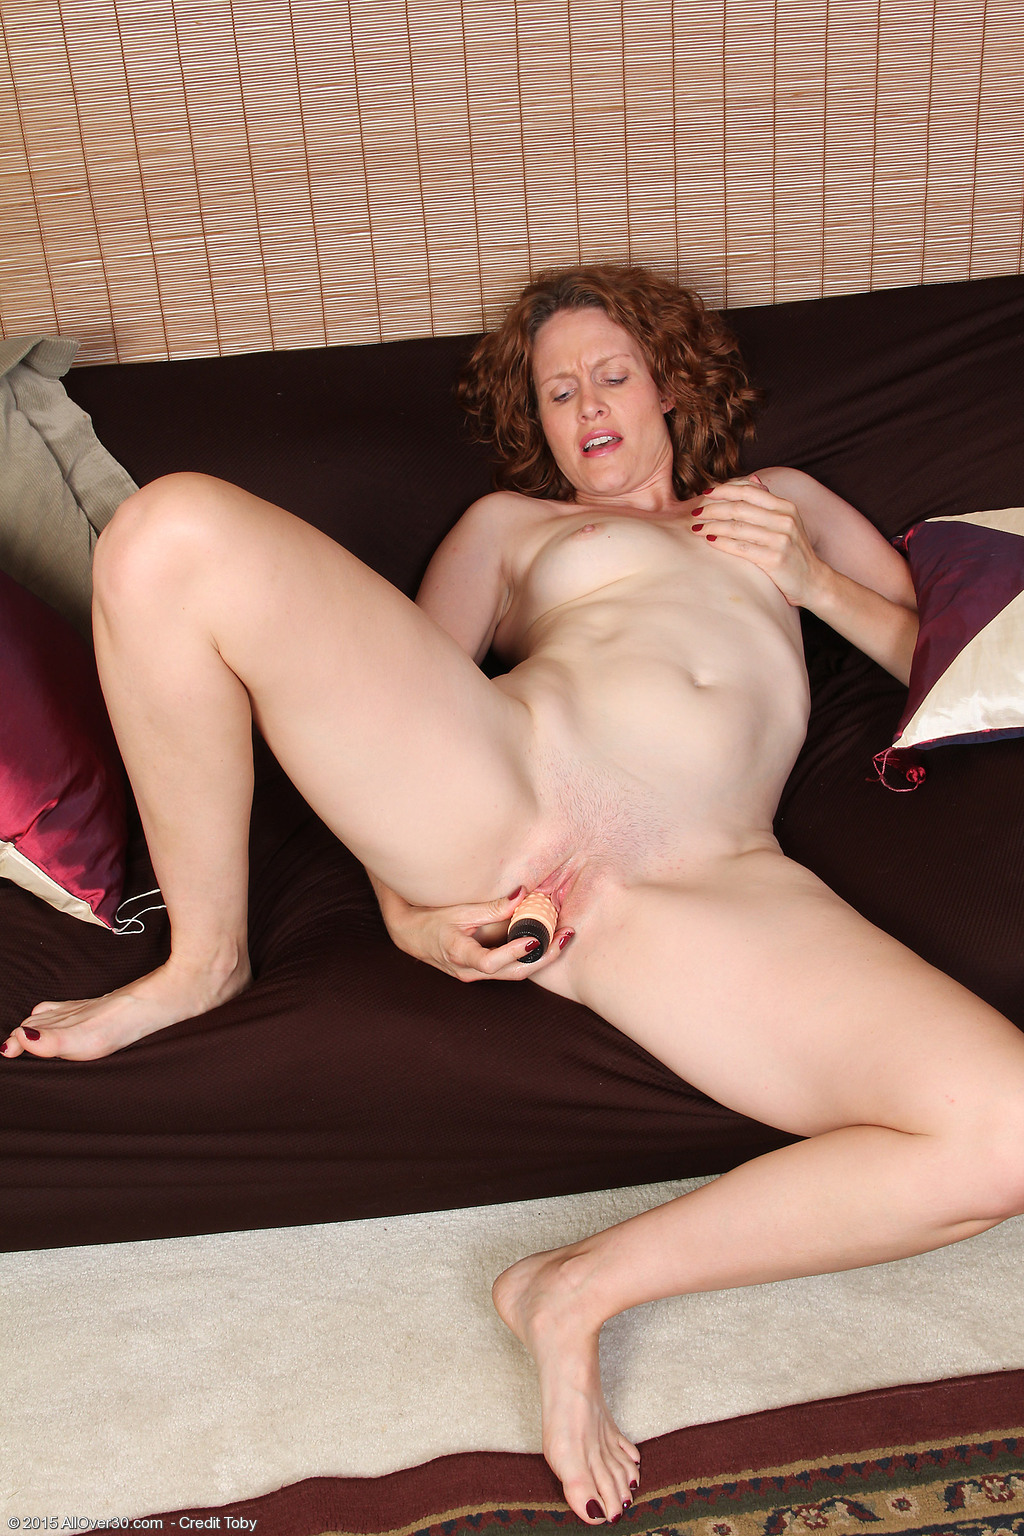 All Georgette mature nude model all